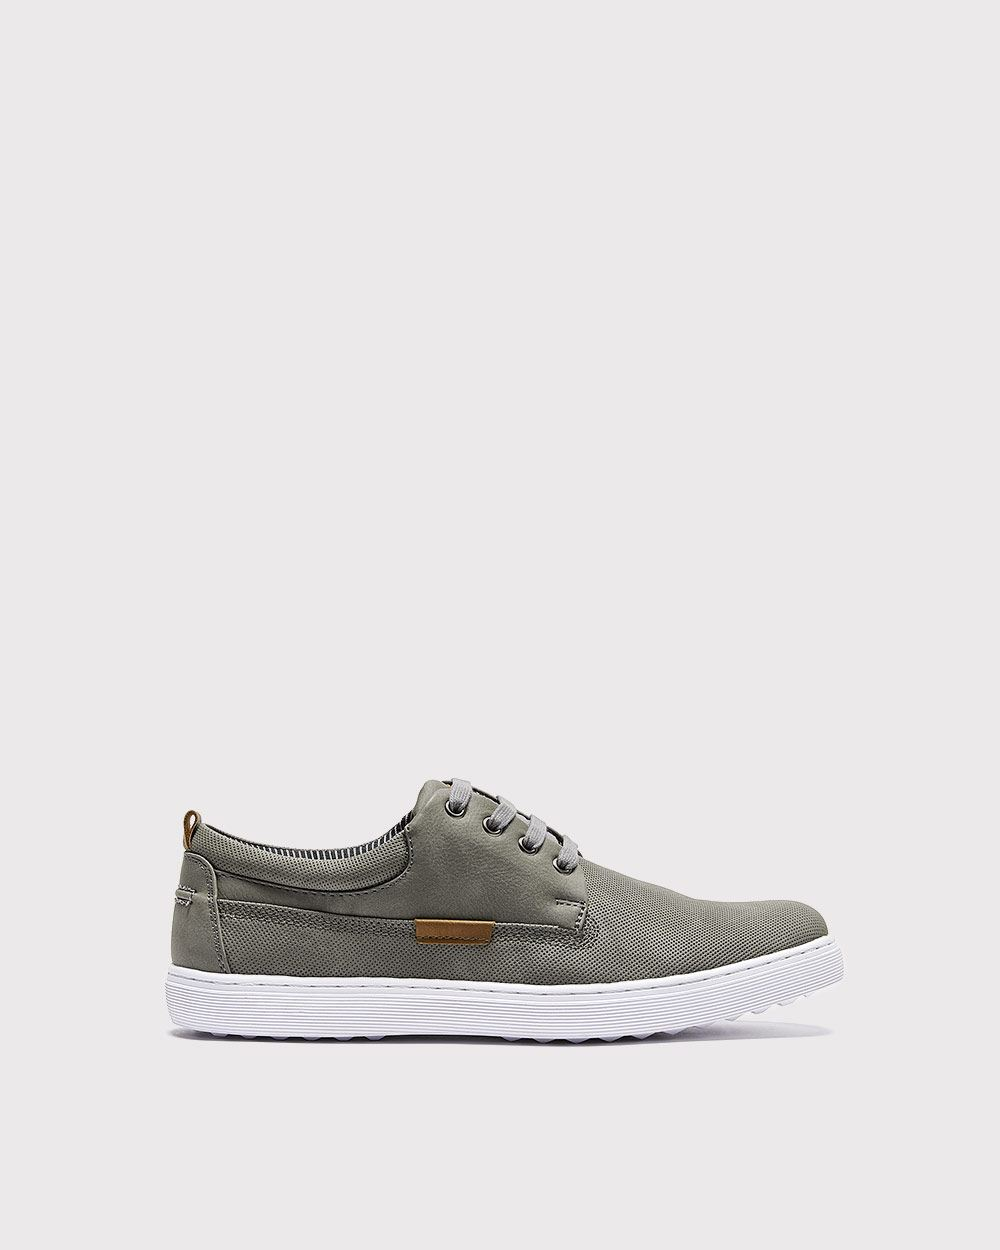 62244327945 Steve Madden (TM) Perforated Textile Halliday sneaker